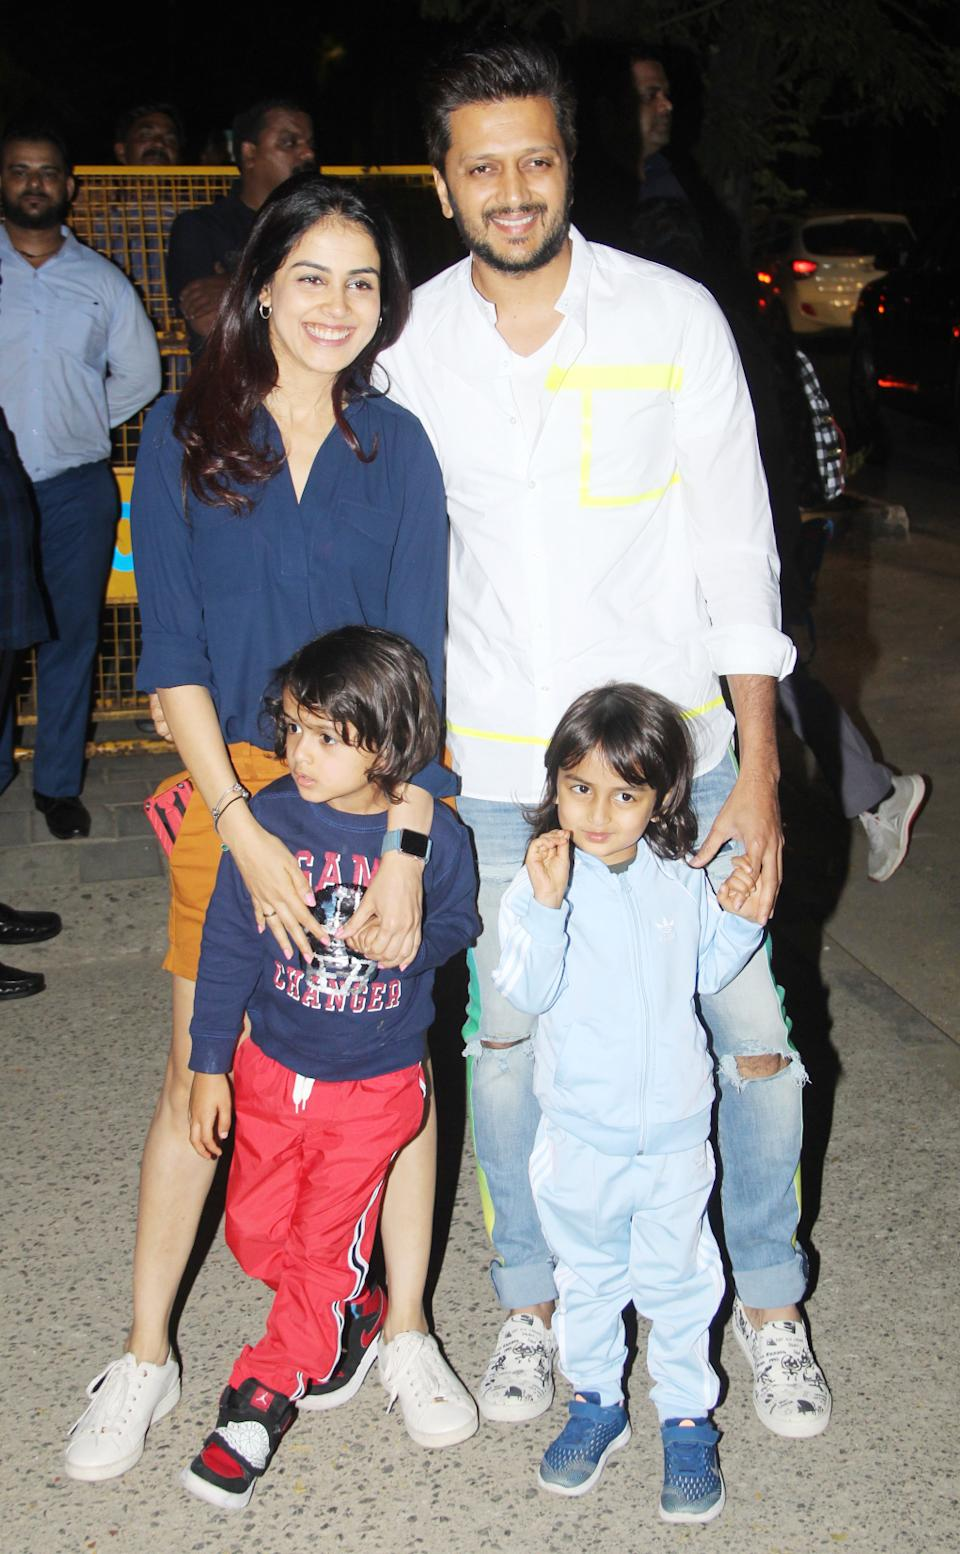 Riteish Deshmukh and Genelia D'Souza with their childen.